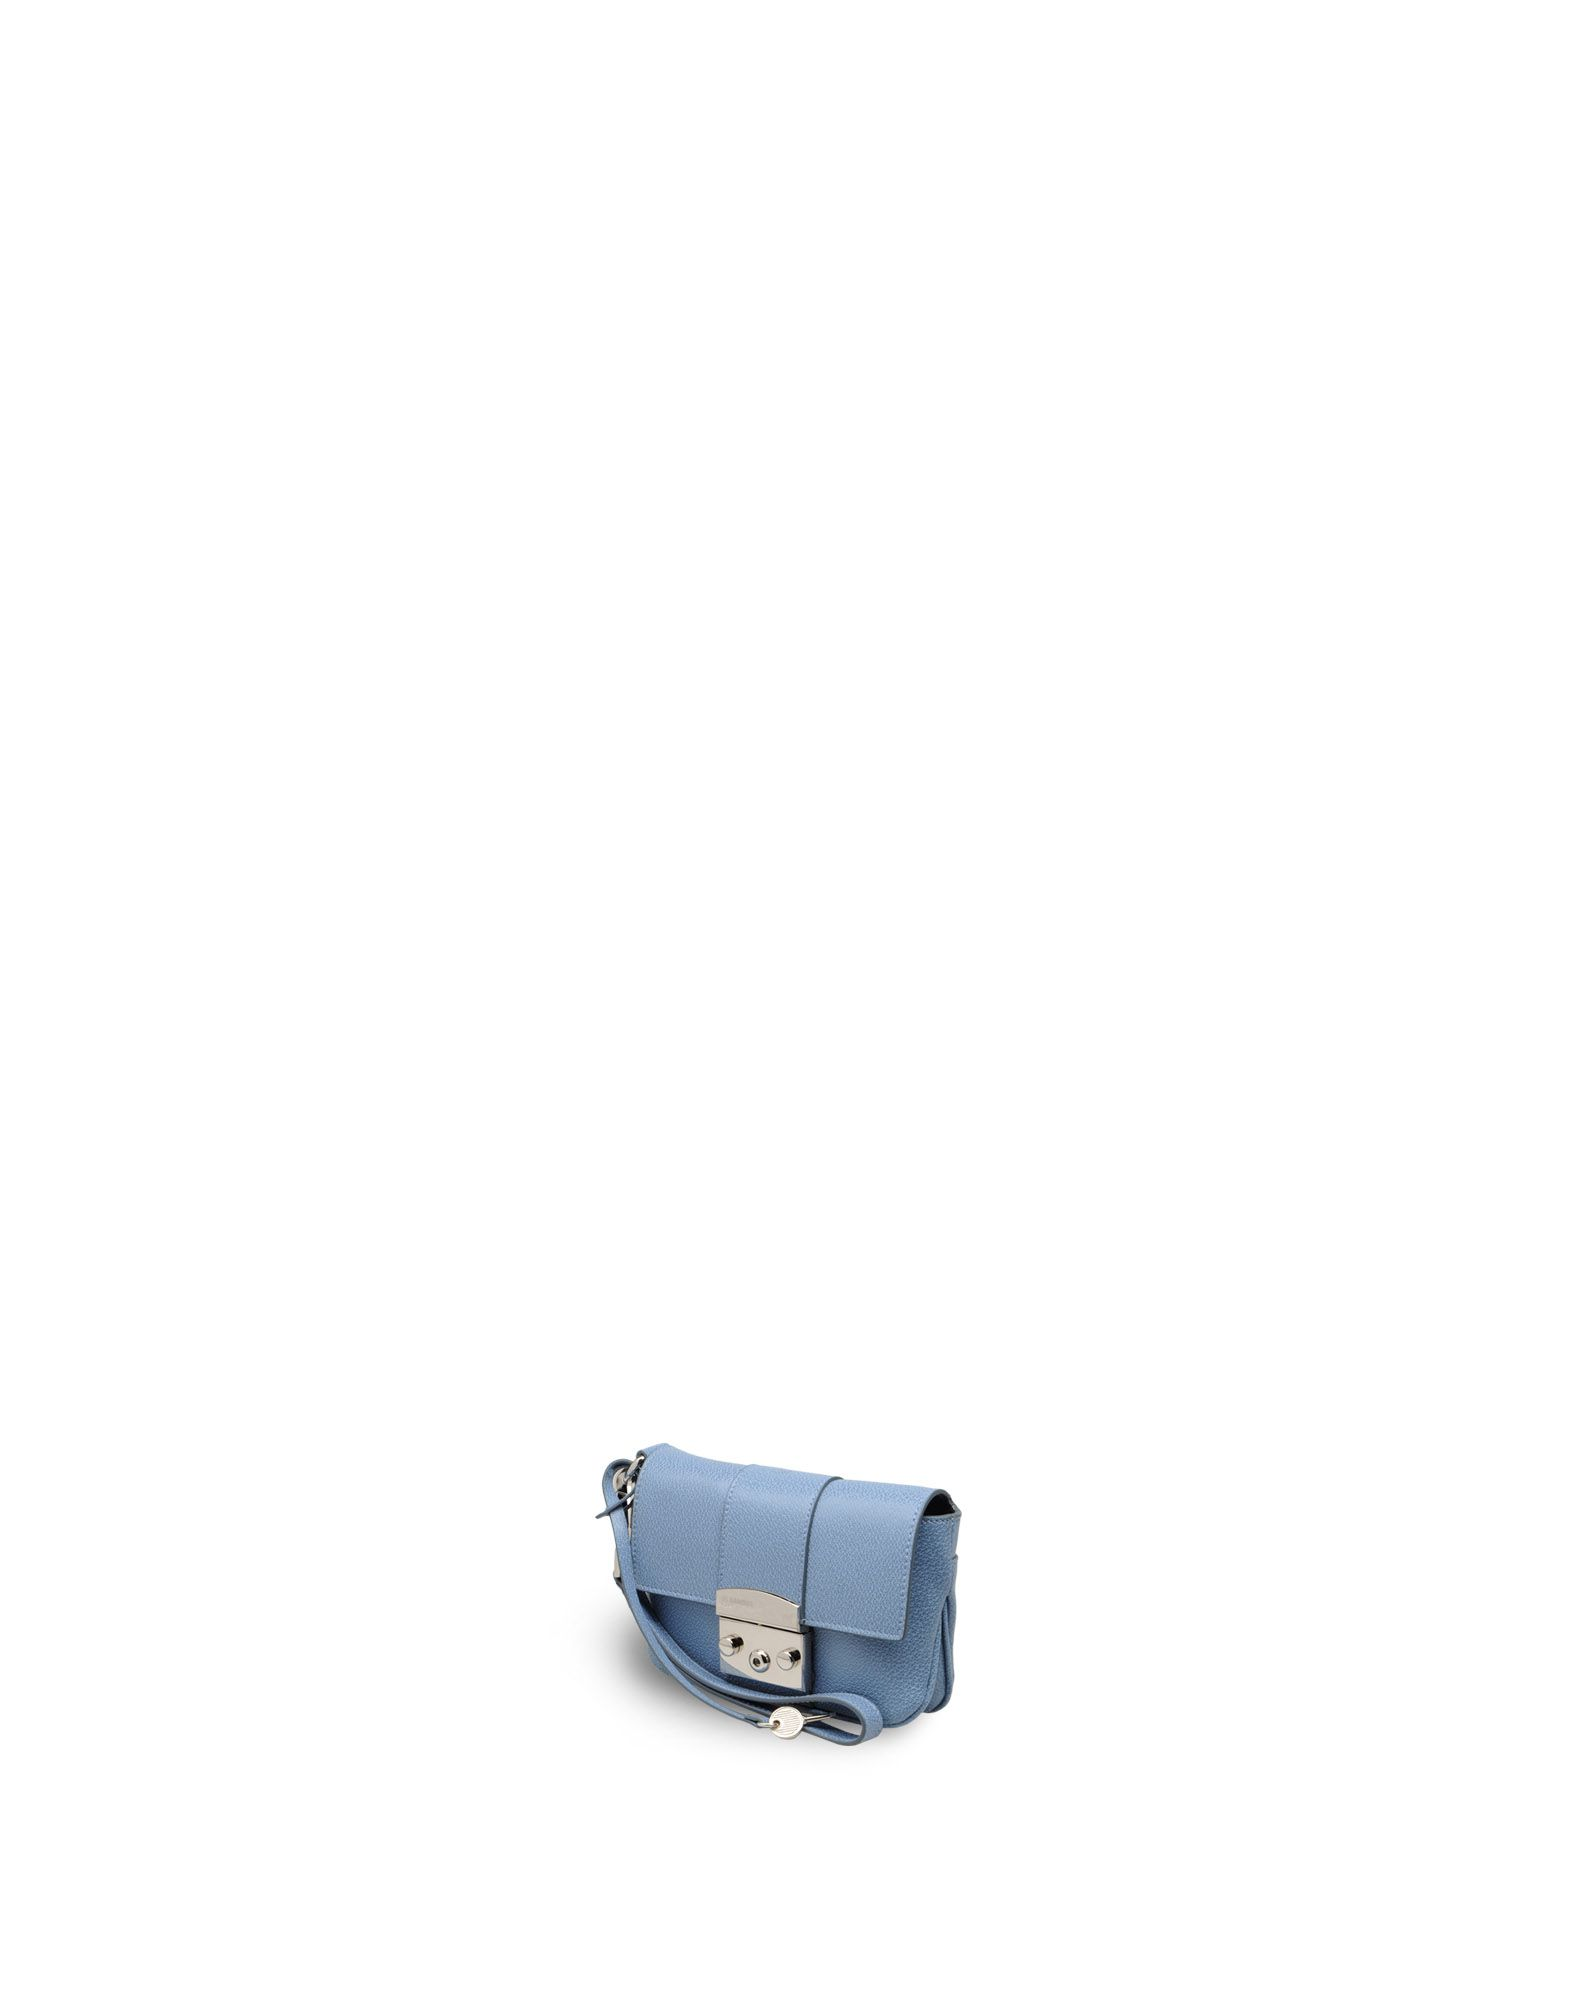 Beauty Case - JIL SANDER NAVY Online Store